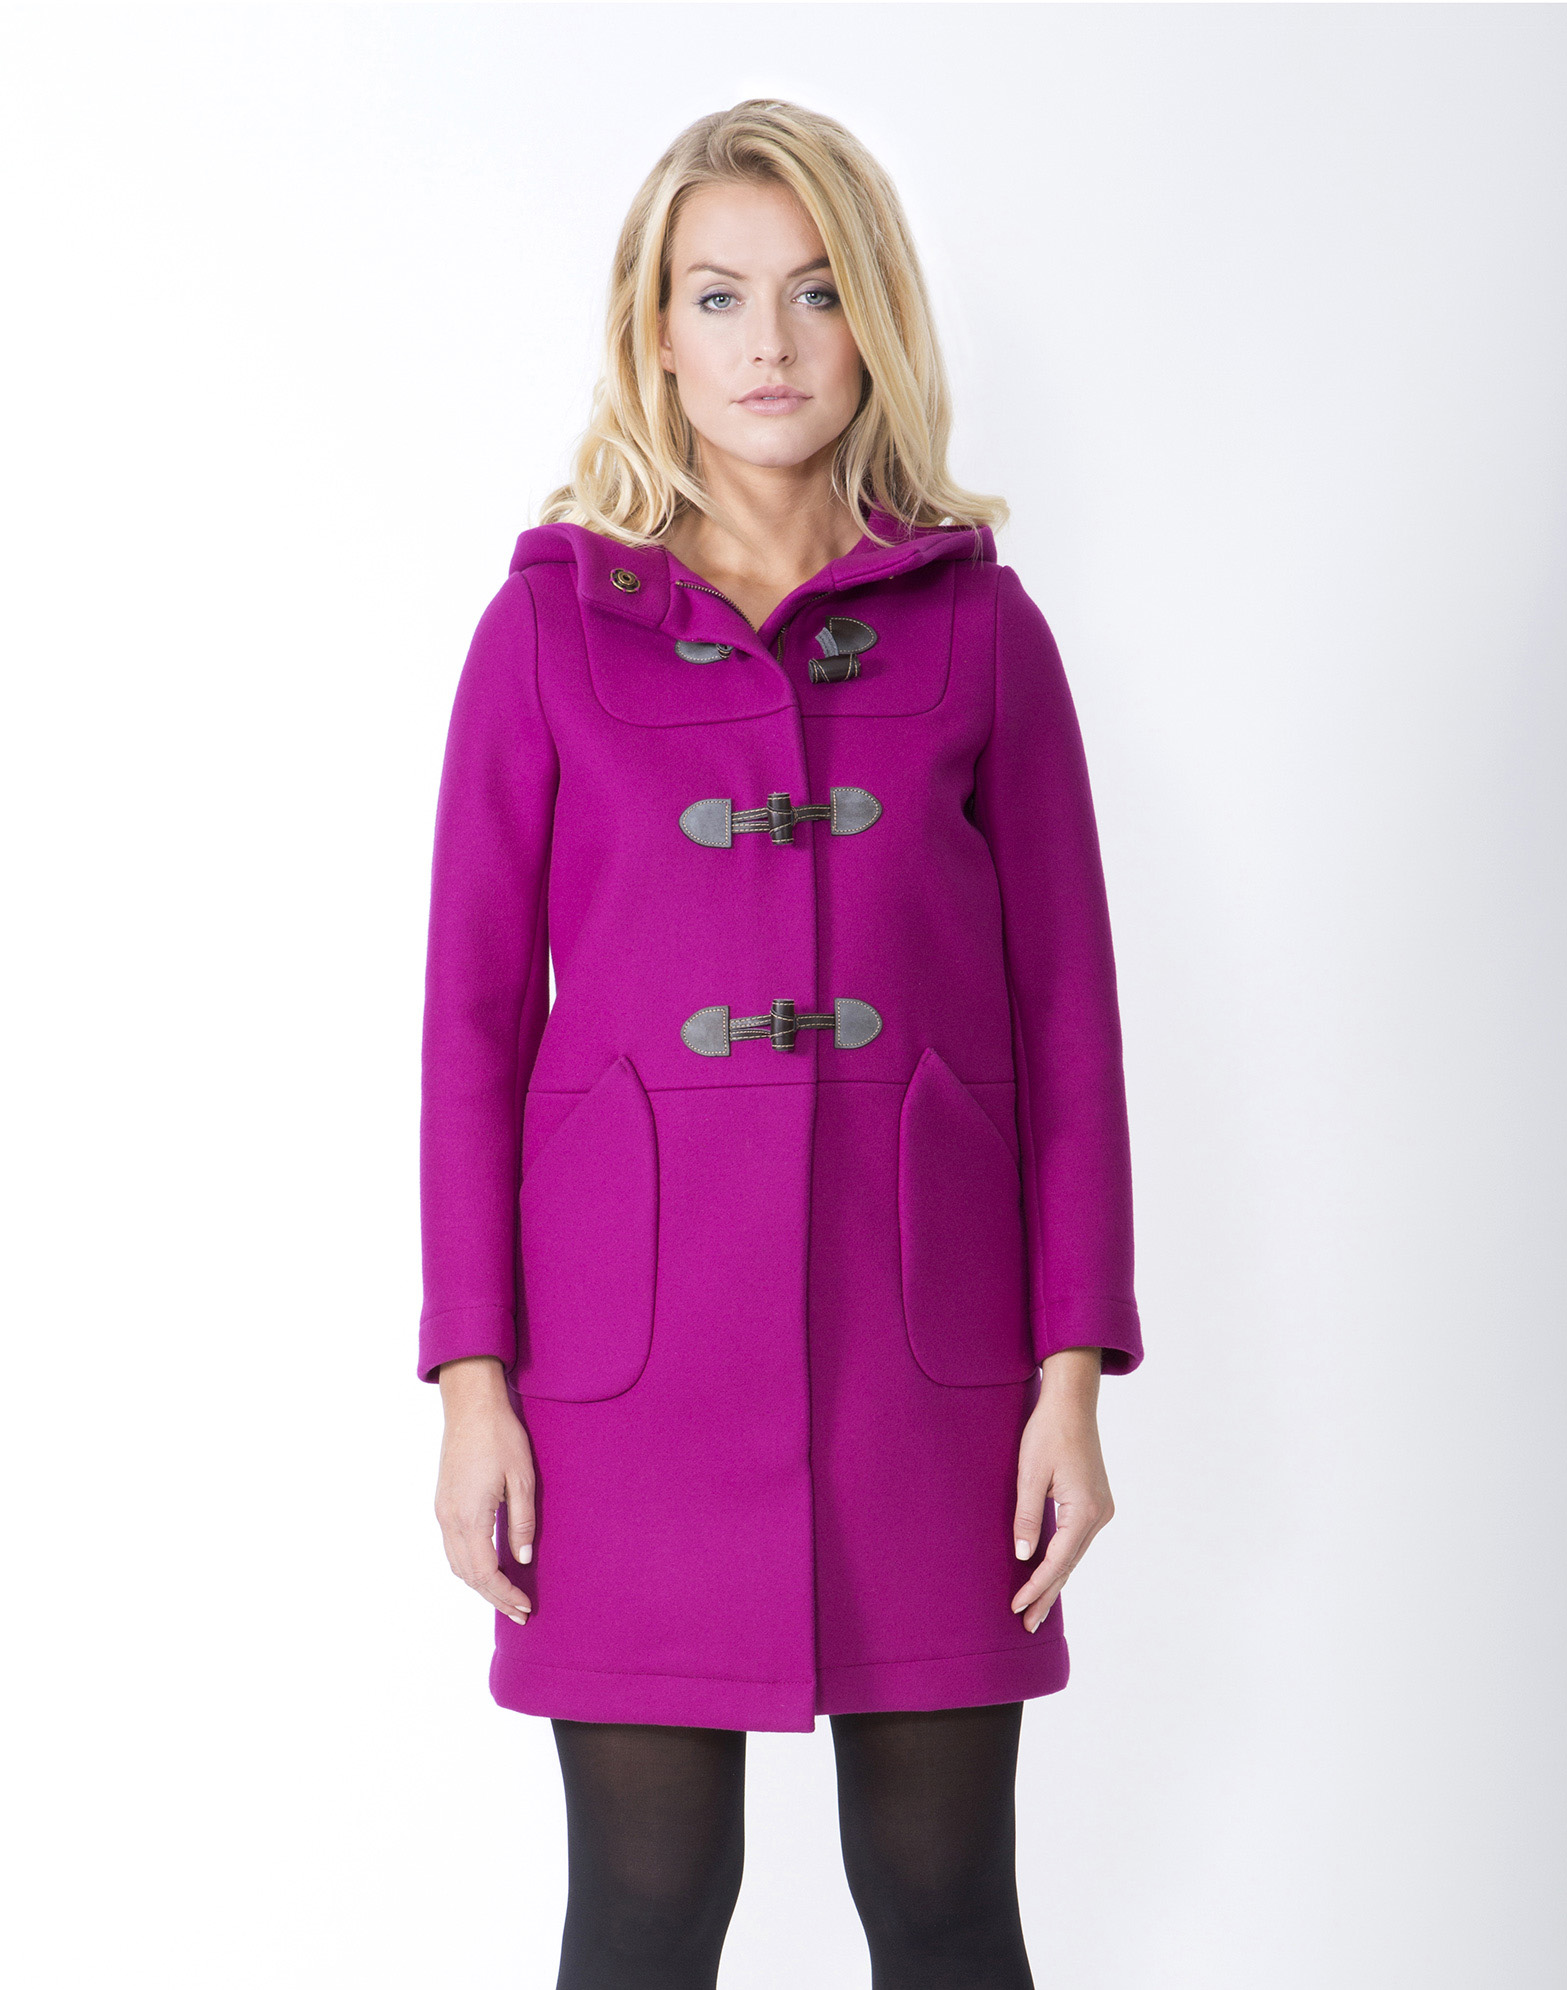 Shop for Black Rivet Women's Pink Button-front Wool Peacoat. Get free delivery at ggso.ga - Your Online Women's Clothing Destination! Get 5% in rewards with Club O! -